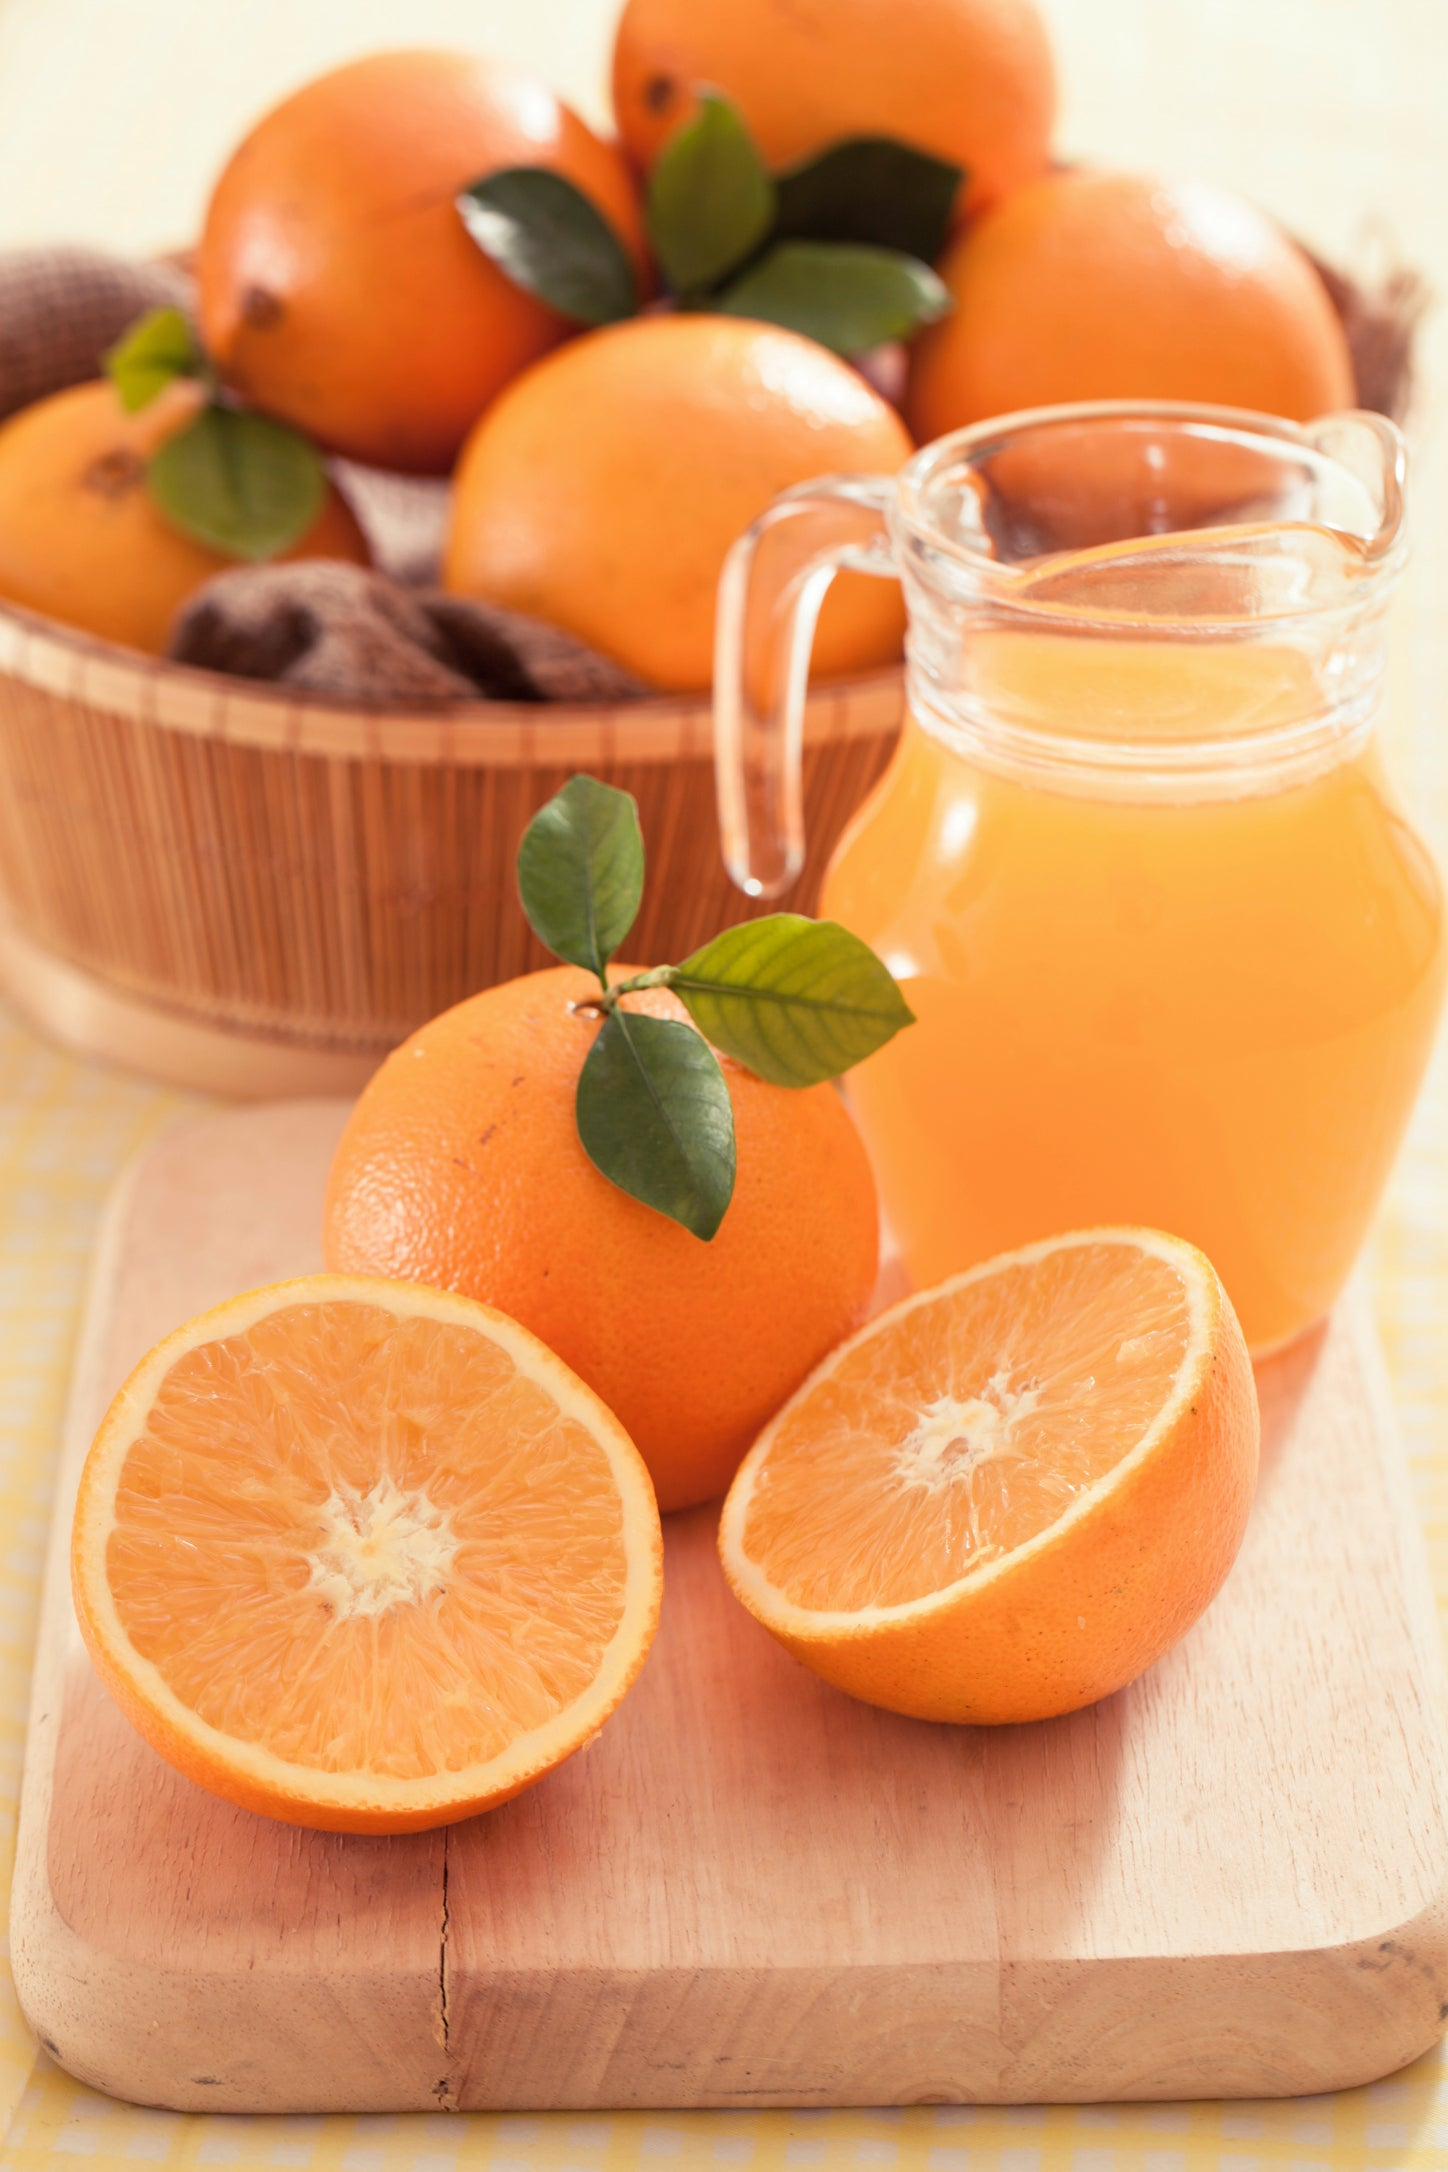 All The Health Benefits of Why You Should Eat Oranges and Drink Orange Juice.